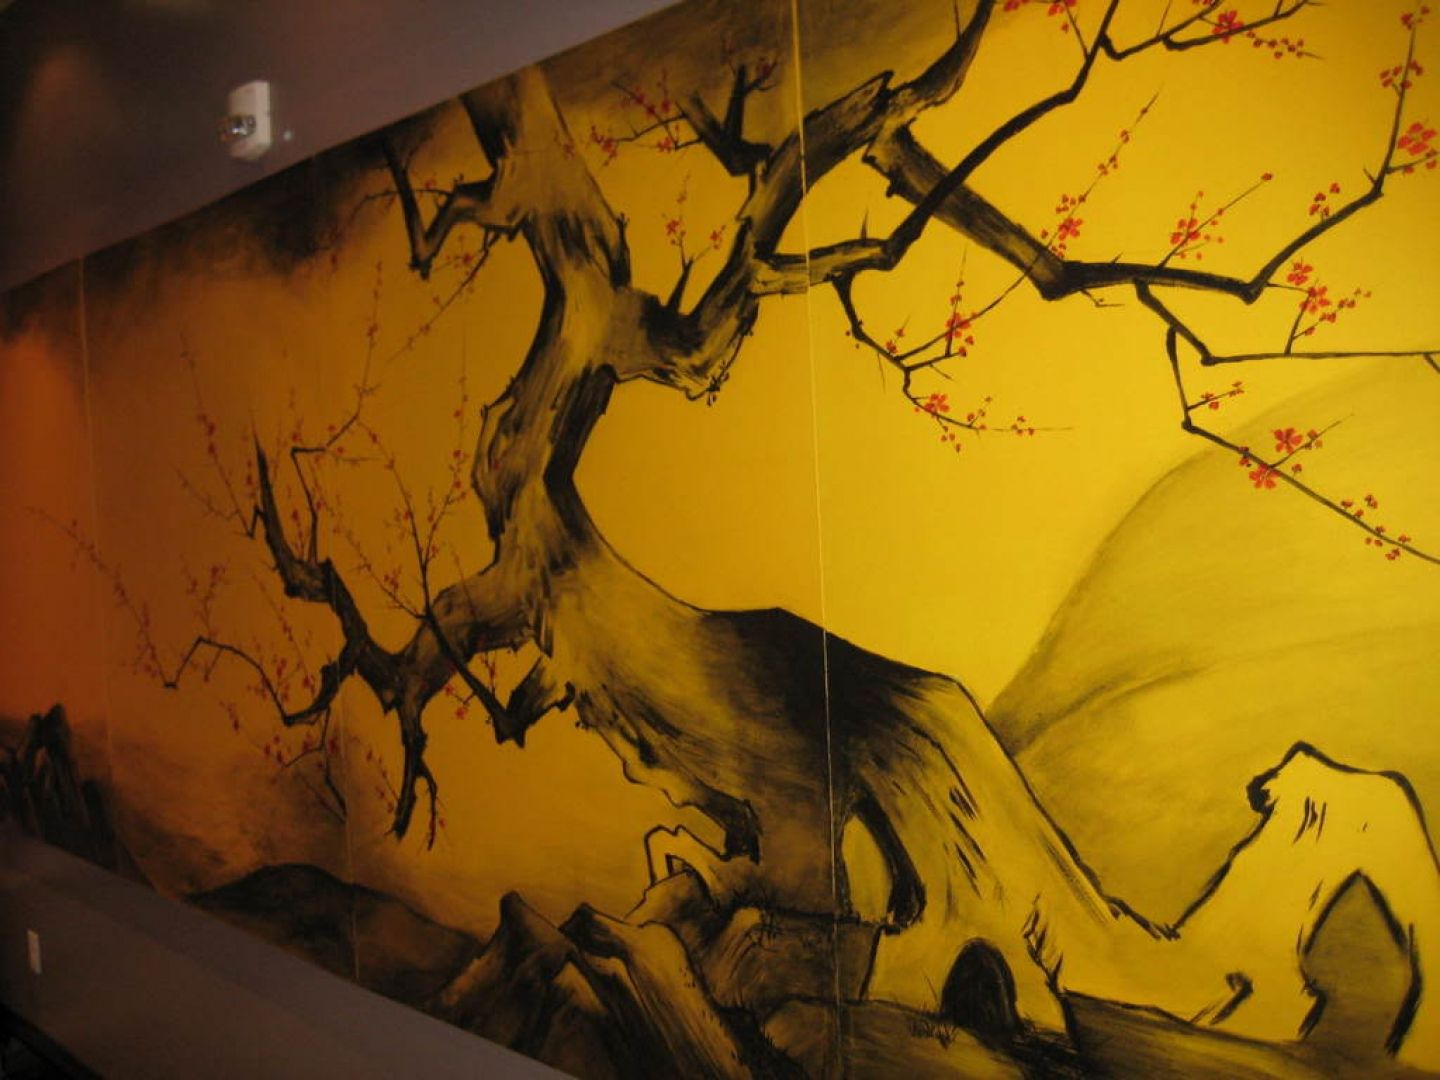 hd wall painting tips wallpaper asian mural in restaurant